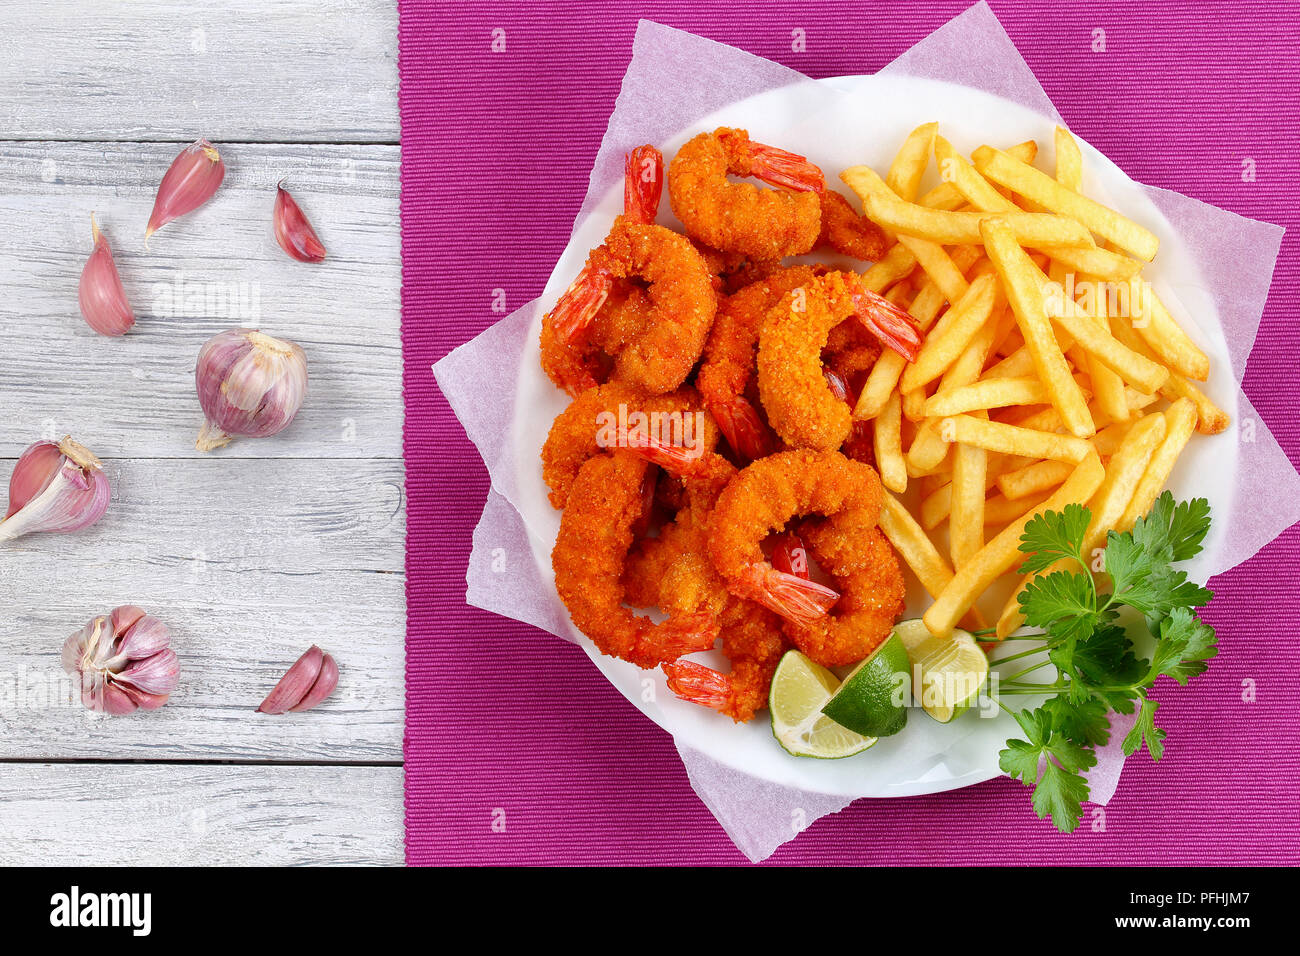 delicious light and crispy crunchy parmesan breaded Fried Shrimps with lime wedges, french fries and parsley on white plate on wooden table, garlic cl Stock Photo